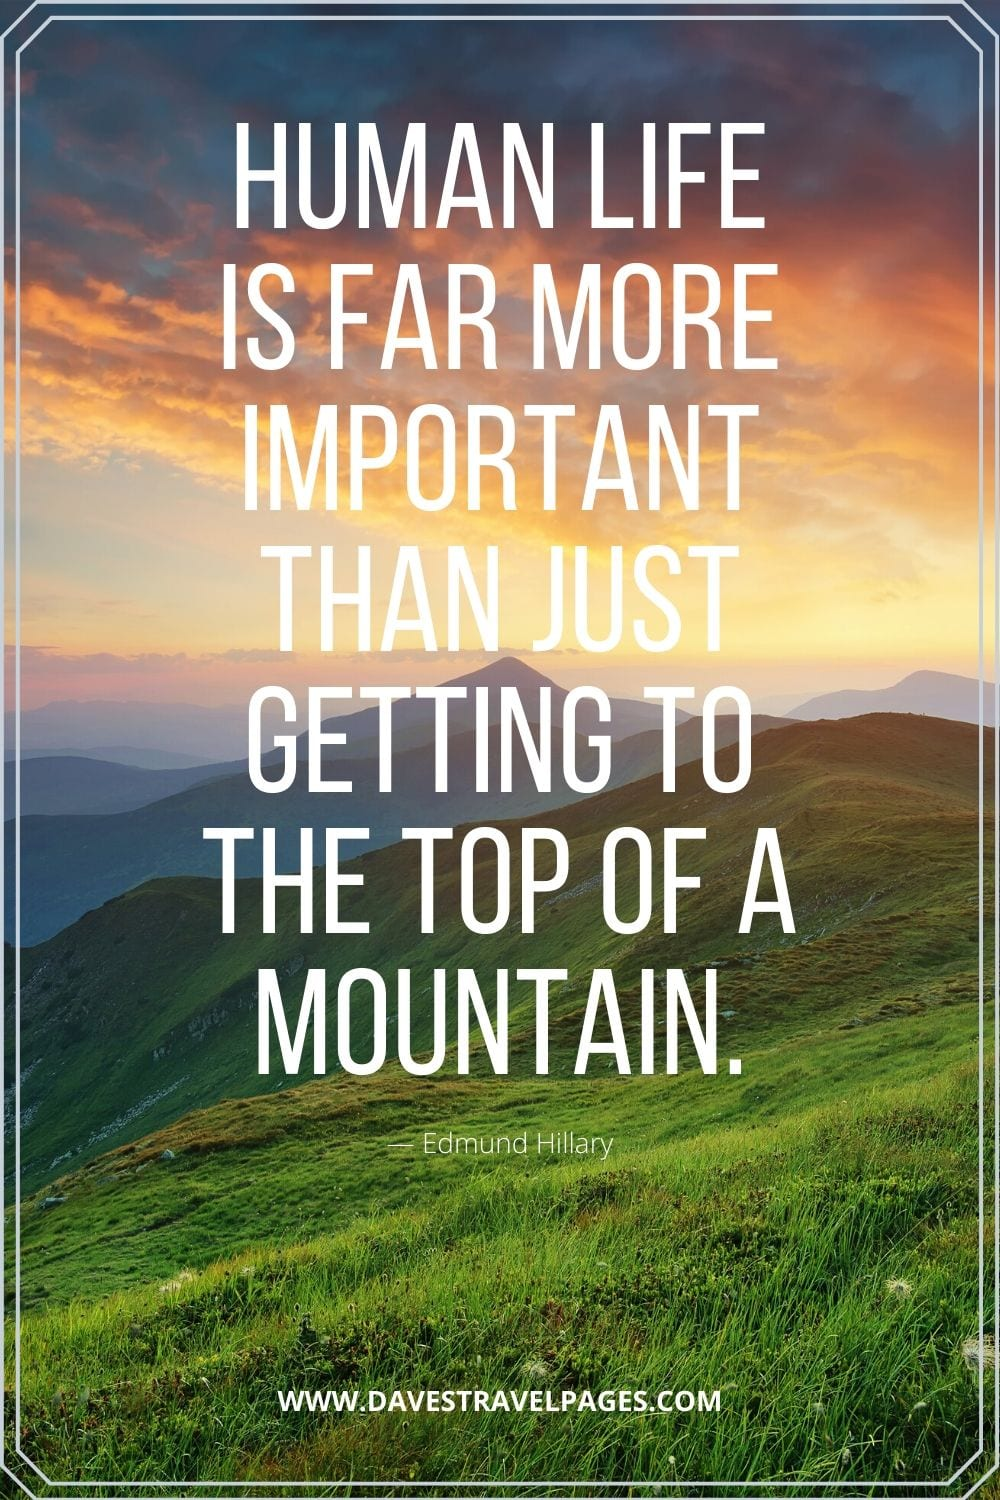 "Inspiring Quote by Edmund Hillary: ""Human life is far more important than just getting to the top of a mountain."""